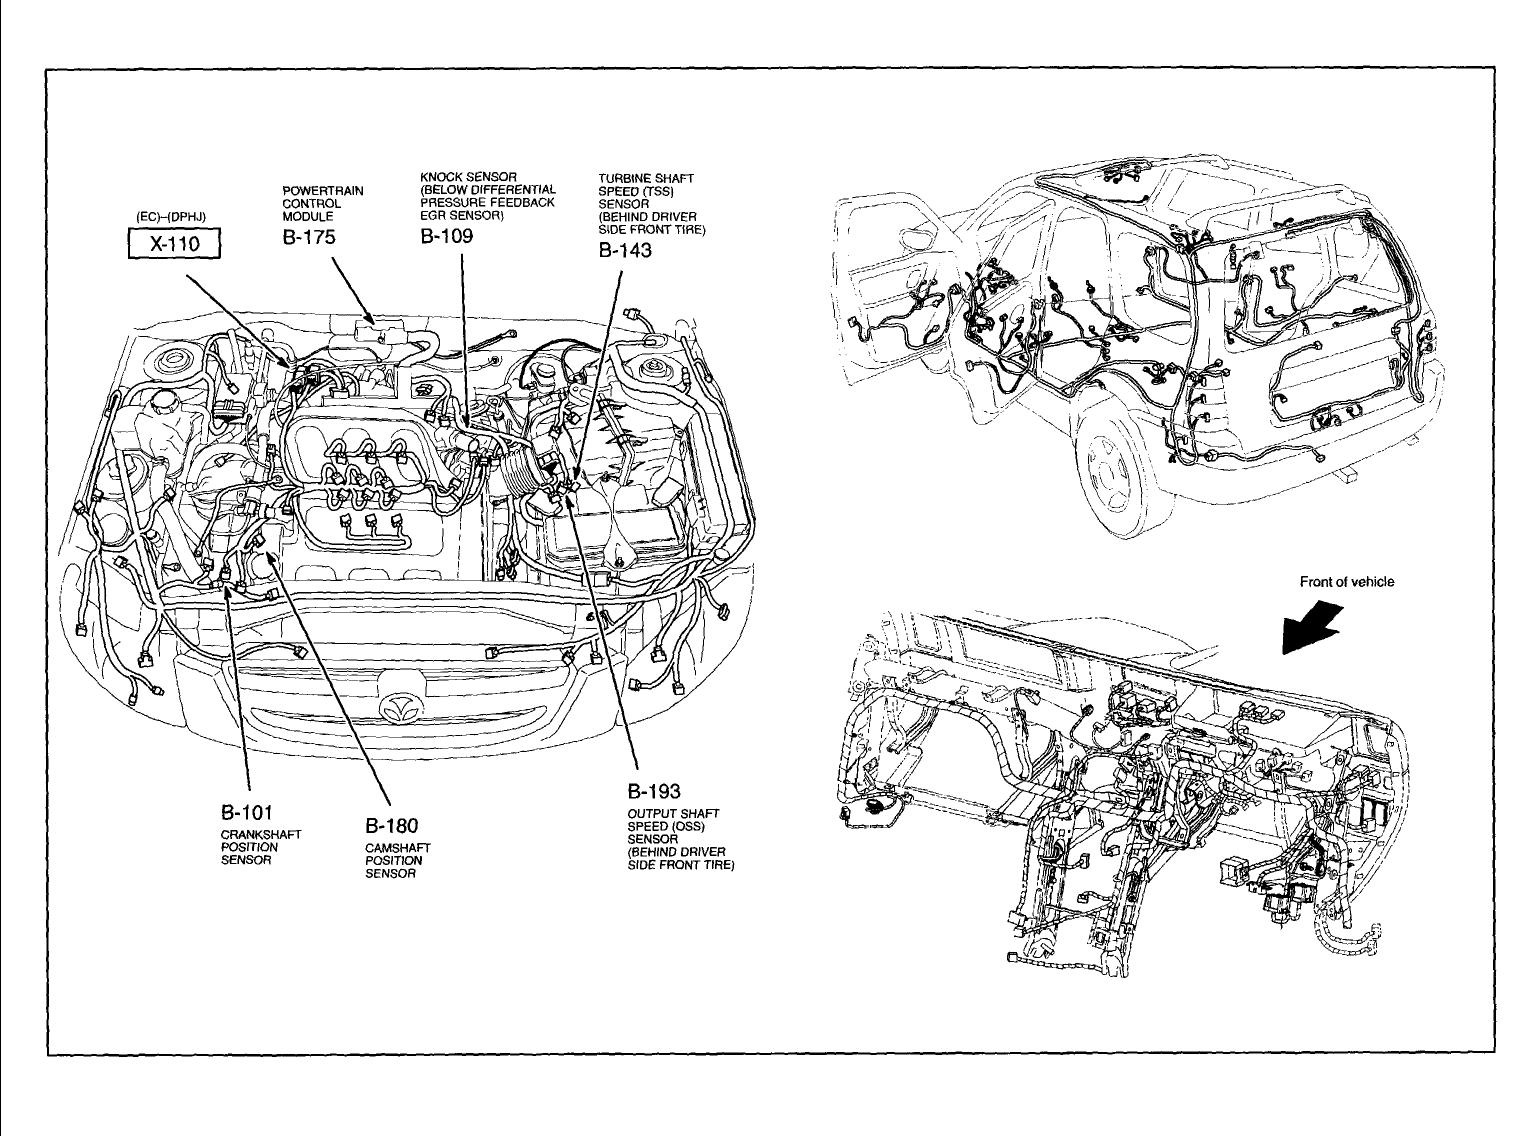 hight resolution of mazda mx 3 questions whear is the crankshaft sencer locatiom on a 5 answers